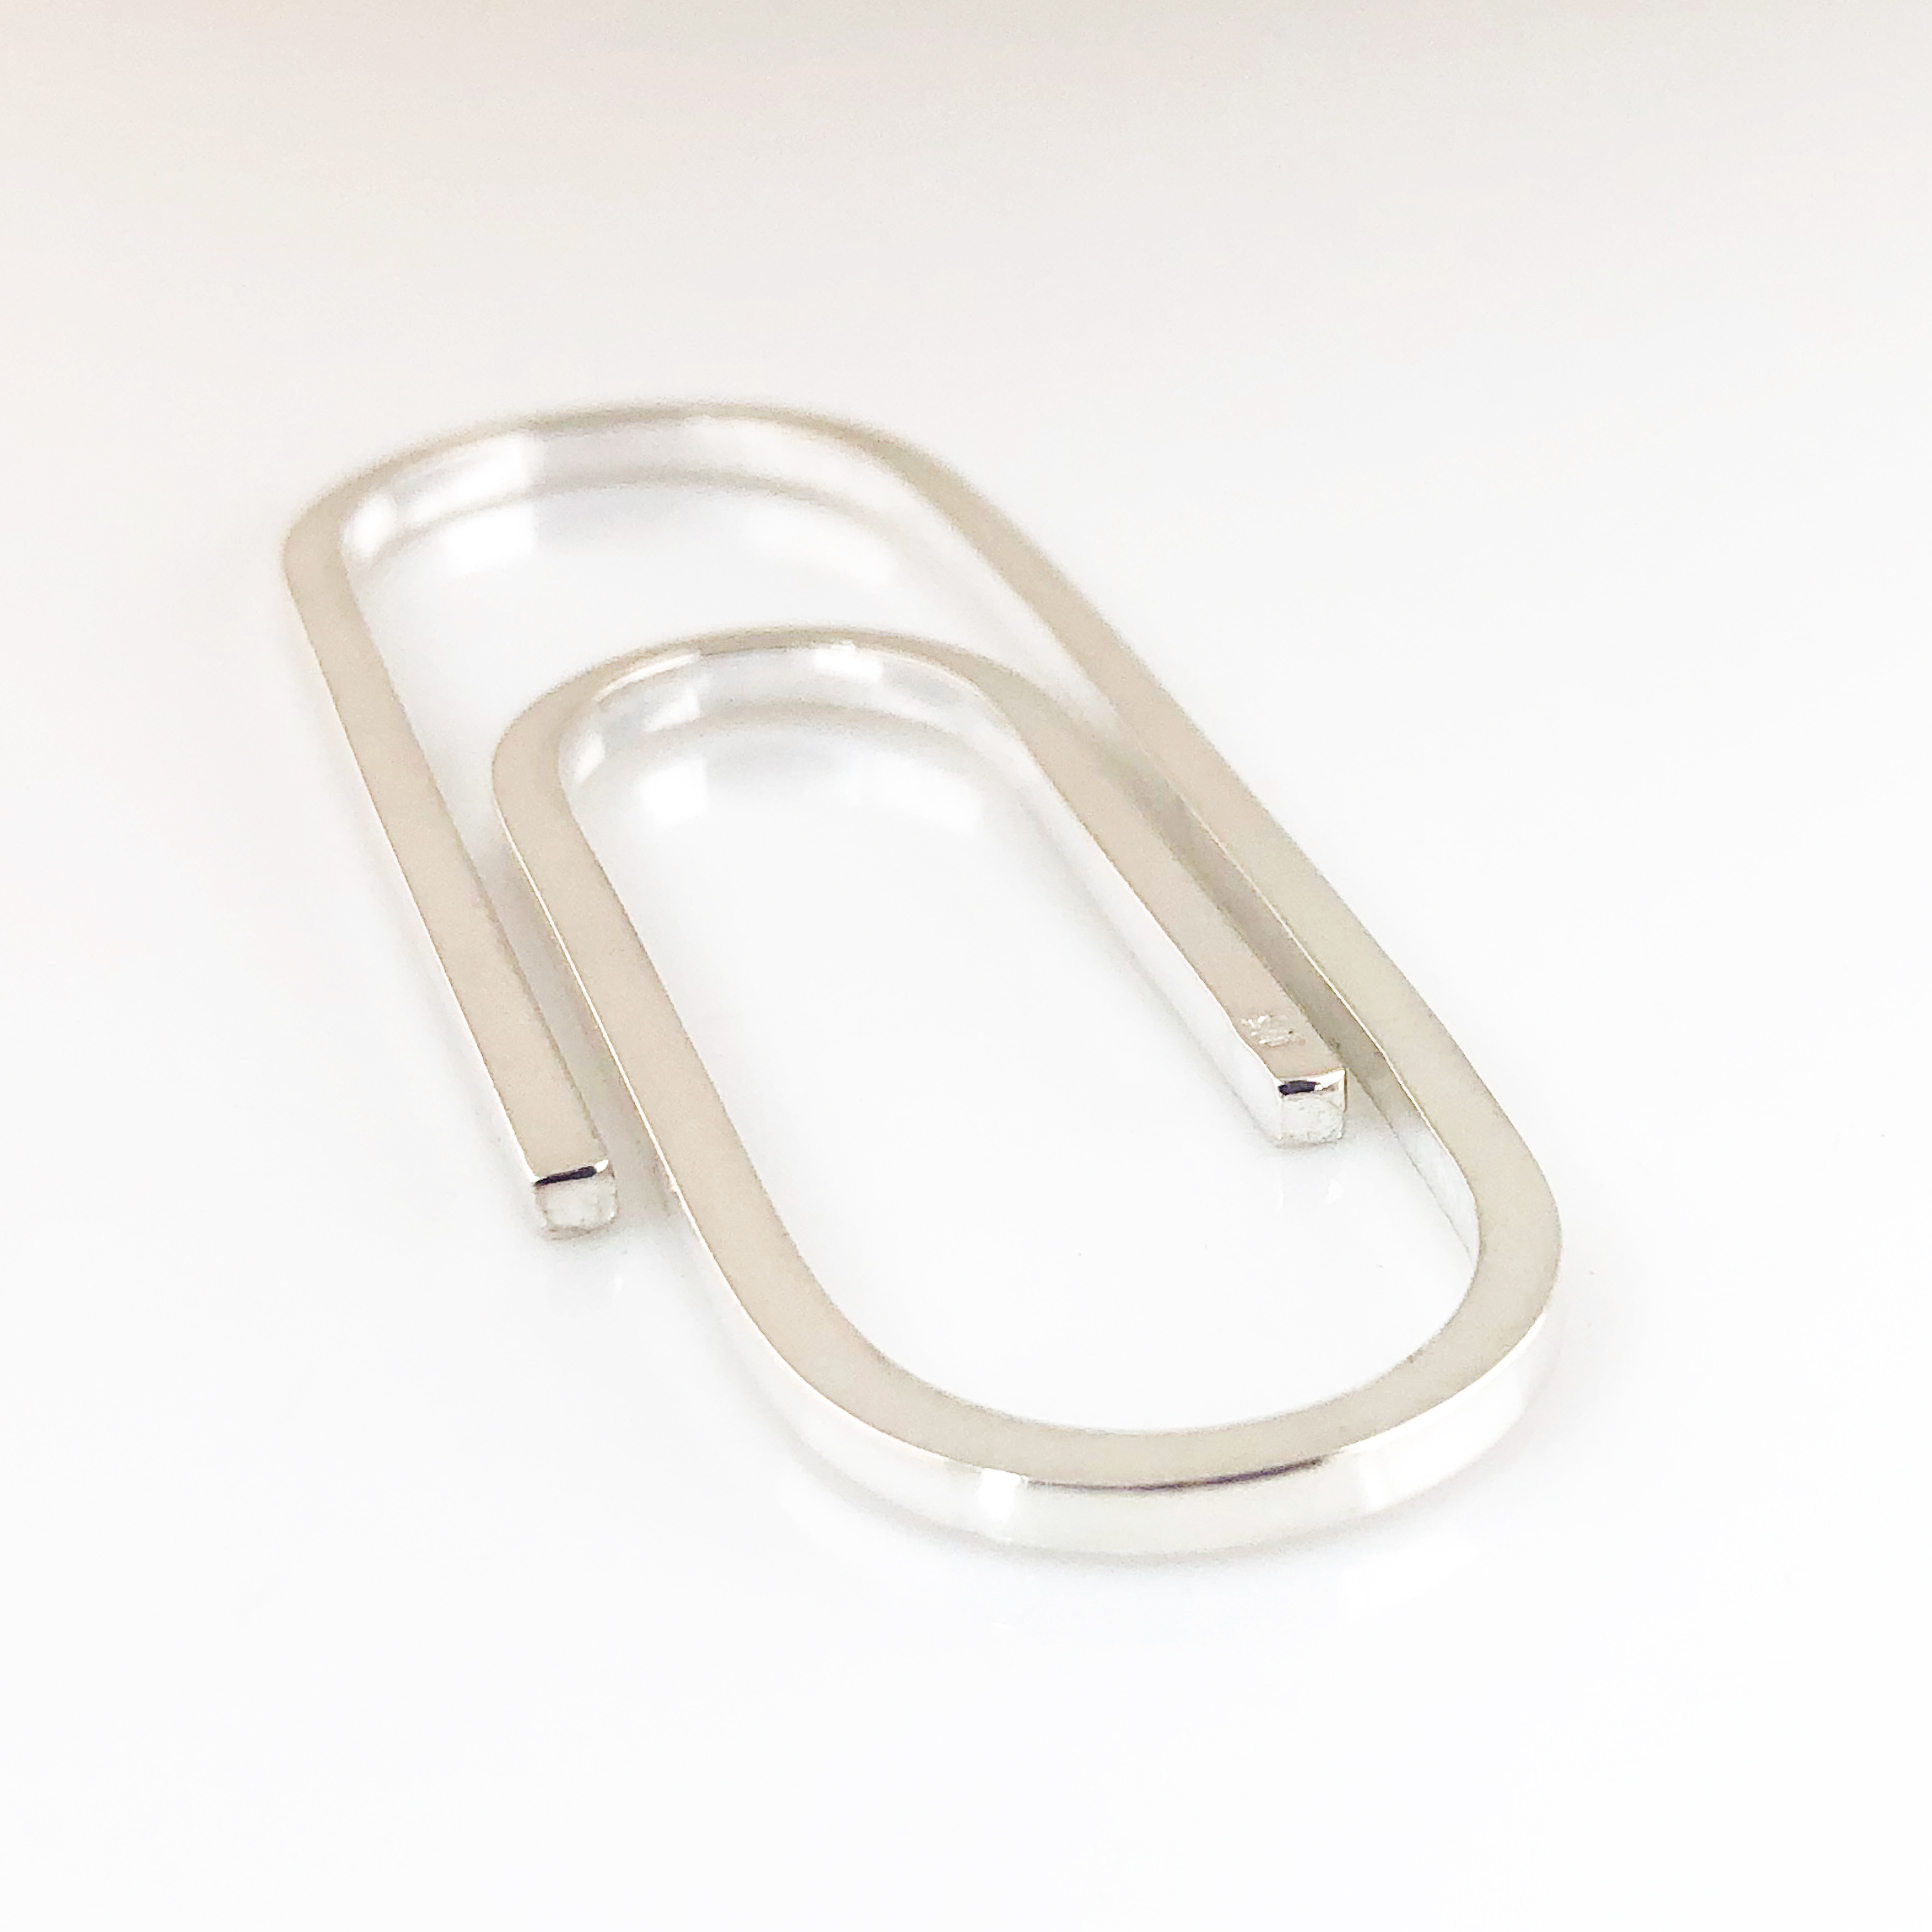 Paperclip Money Clip - Hand Forged Sterling Silver Money Clip